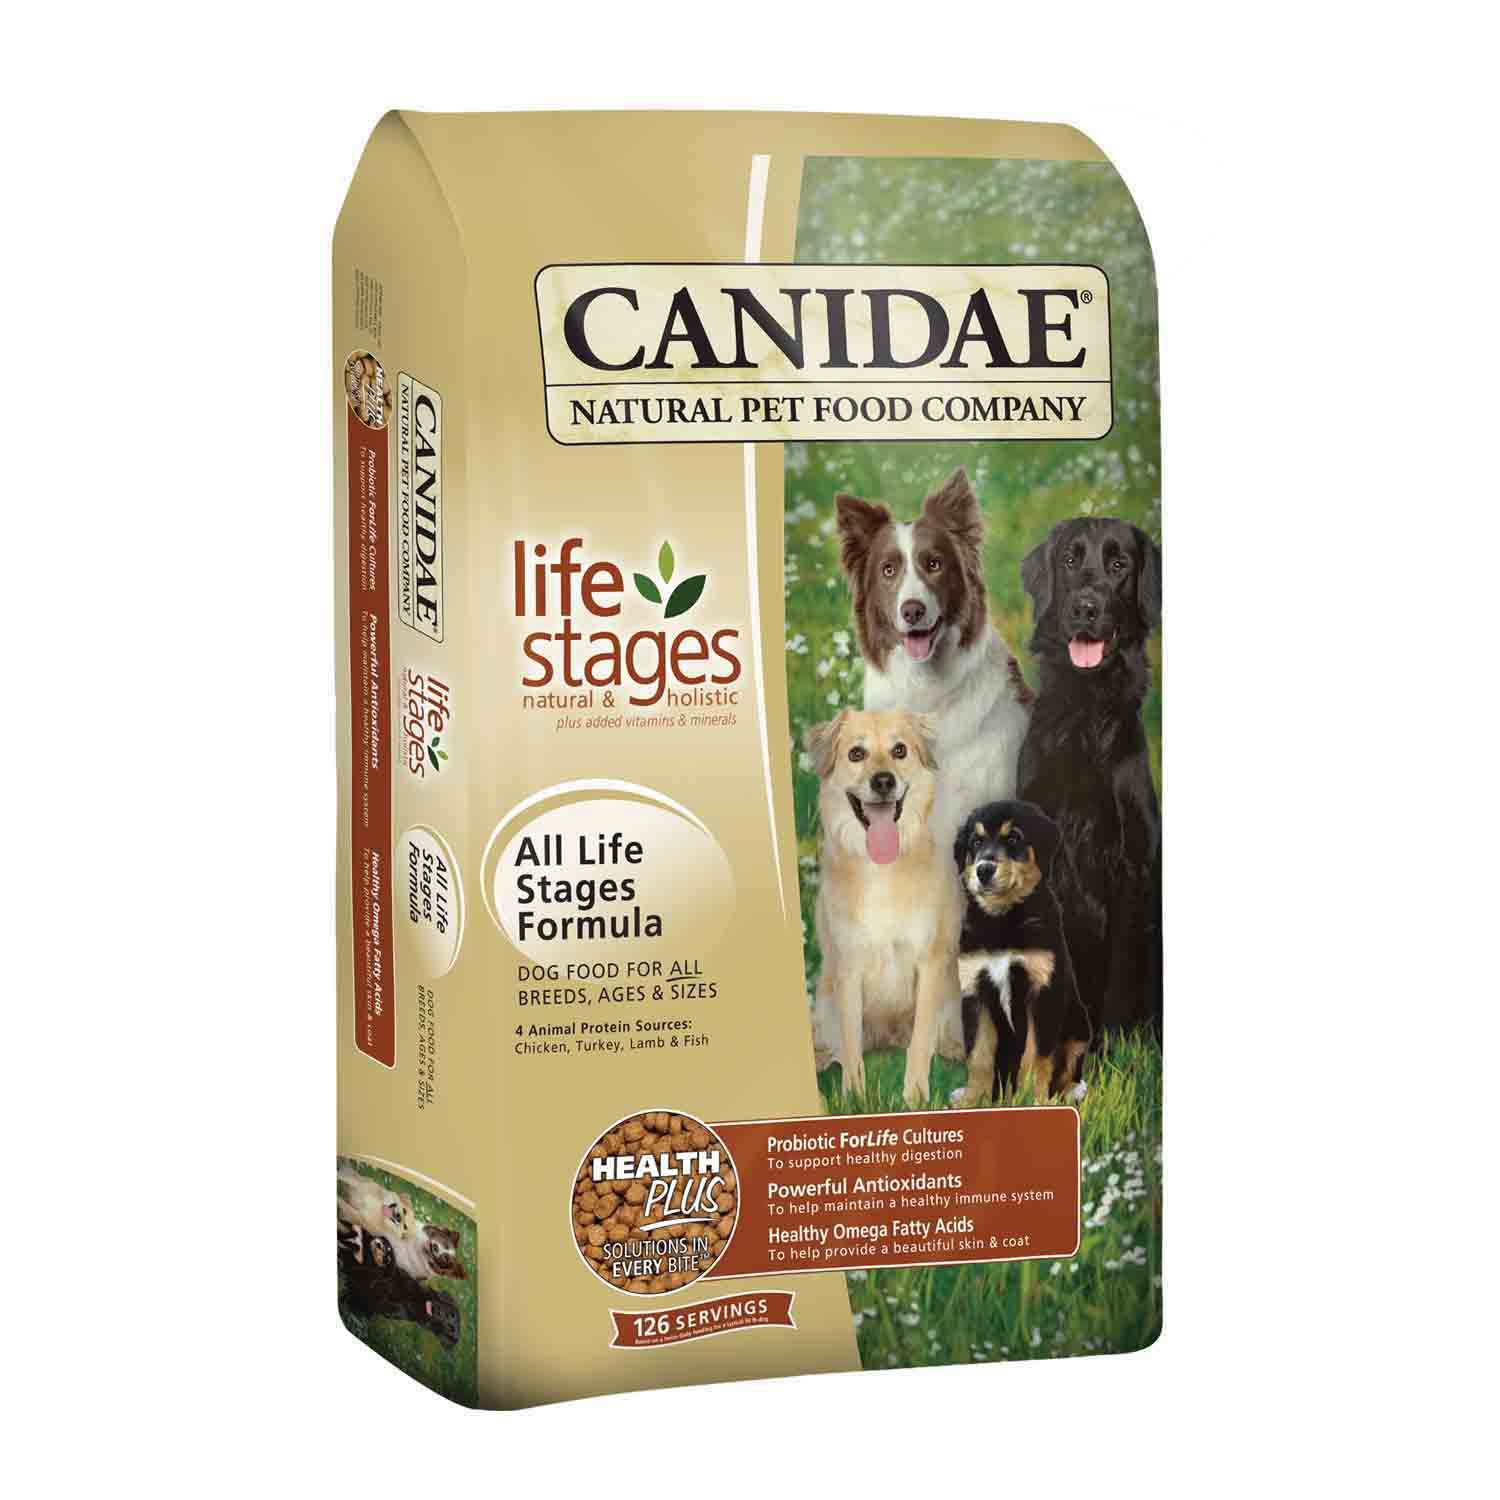 Canidae Dog Food at Wags & Whiskers in La Crosse, WI